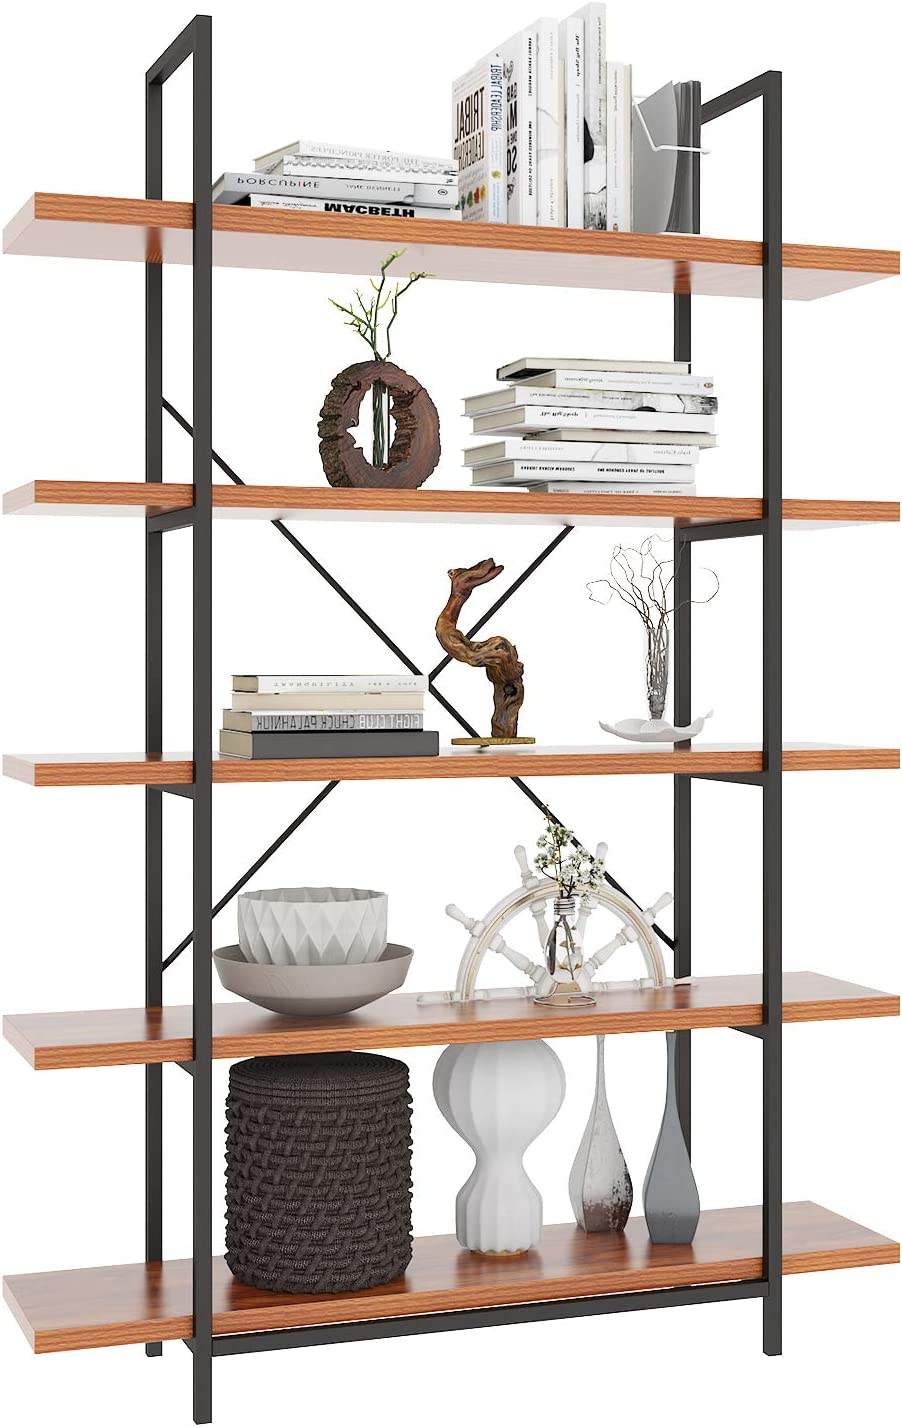 Himimi 5 Tier Bookshelf Open Vintage Industrial Style Bookshelves And Bookcase Etagere Bookcase With Metal Frame For Home And Office Organizer Kitchen Dining Amazon Com